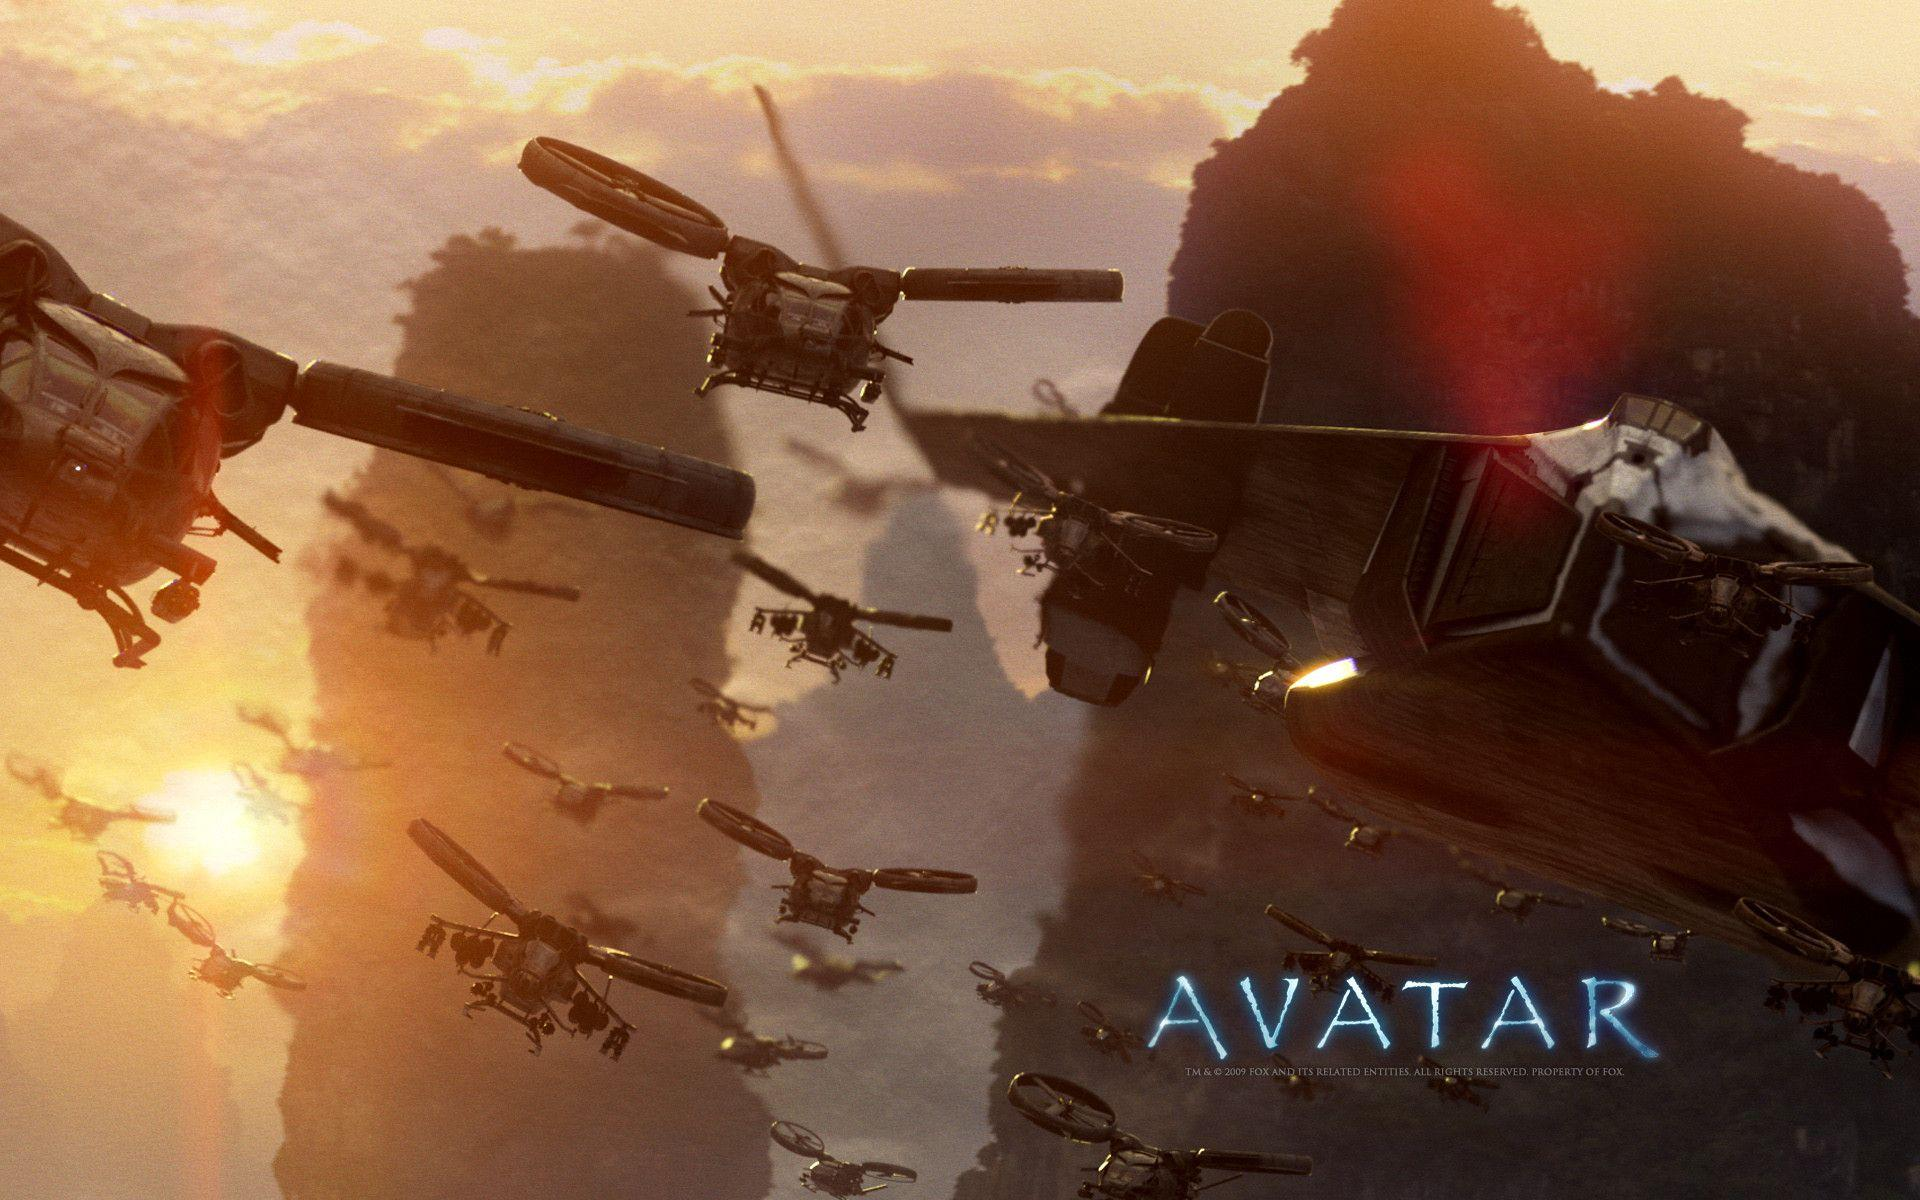 Amazing HD Wallpapers of the 3D epic movie Avatar | Leawo Official ...